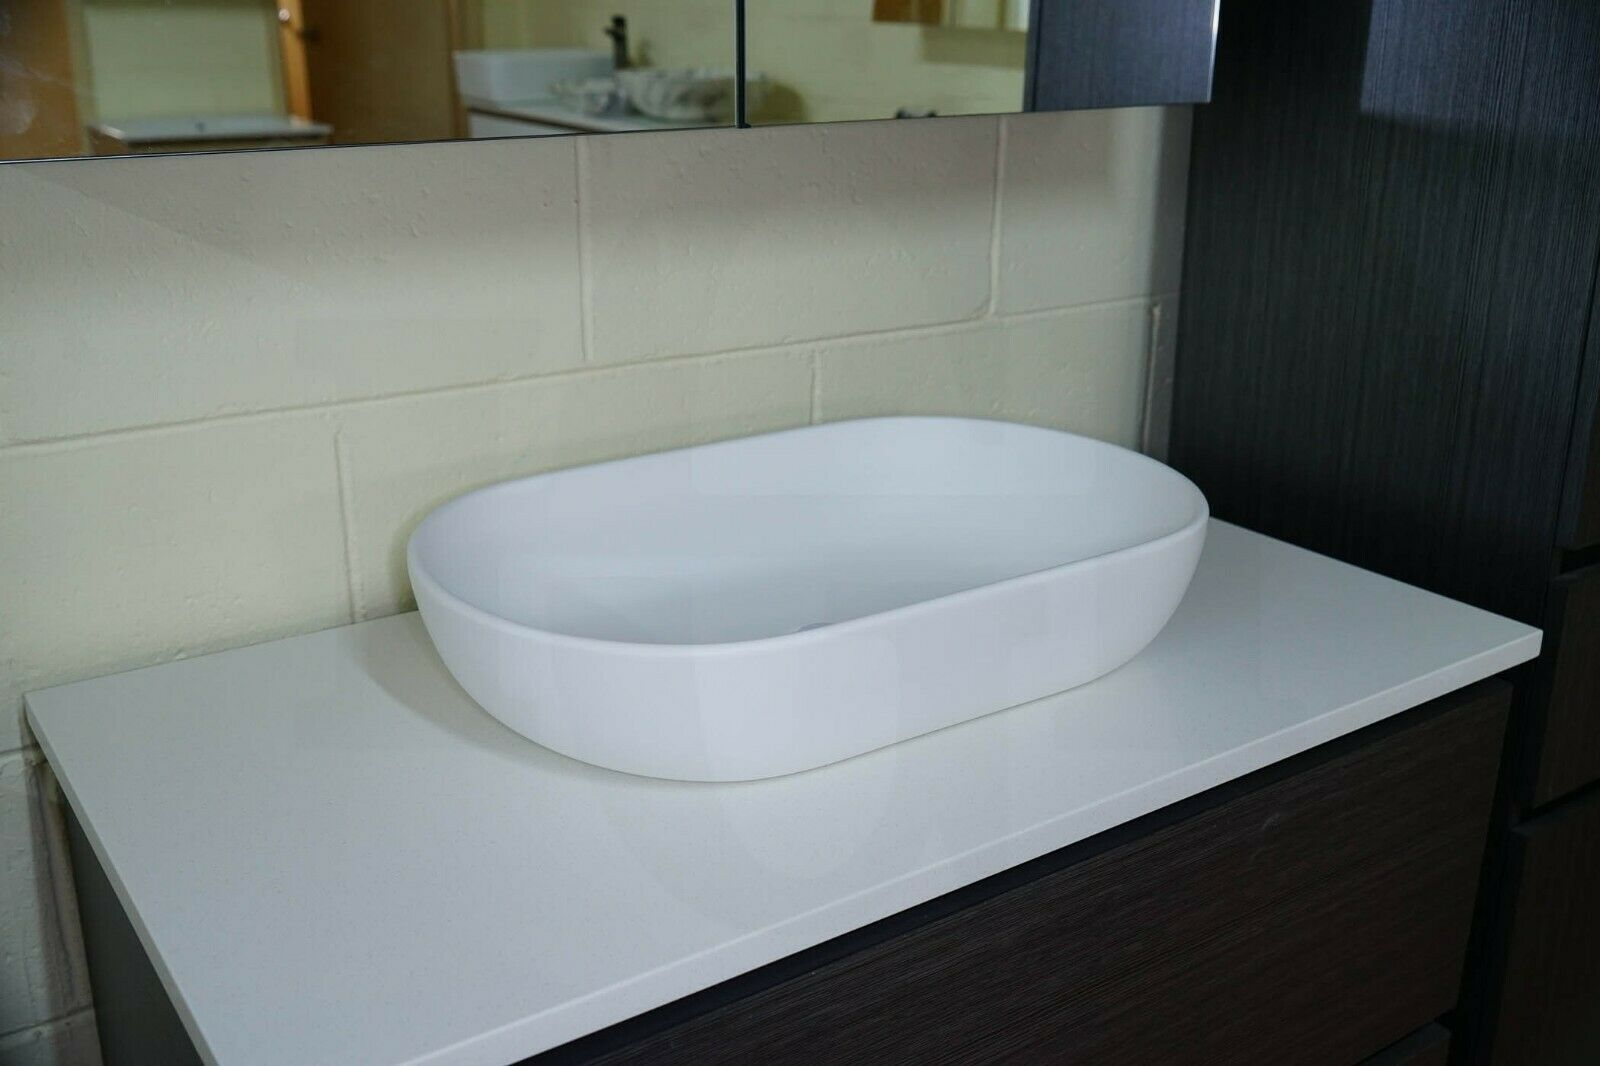 617 Oval Matte White Above Counter Art Basin Solid